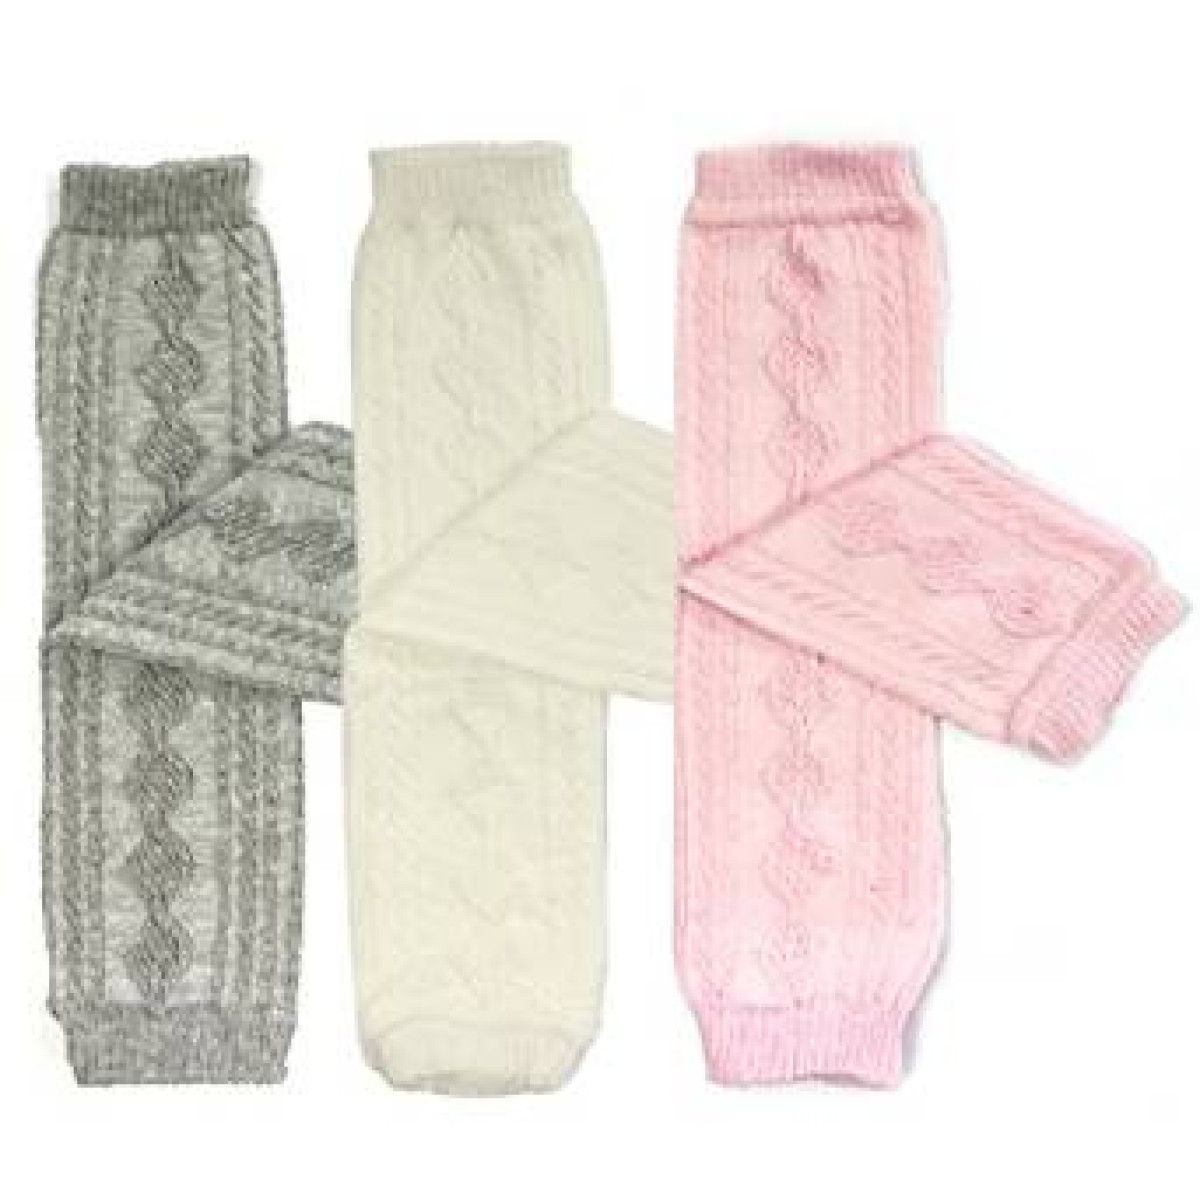 Bowbear 3 Pair Baby and Toddler Leg Warmers